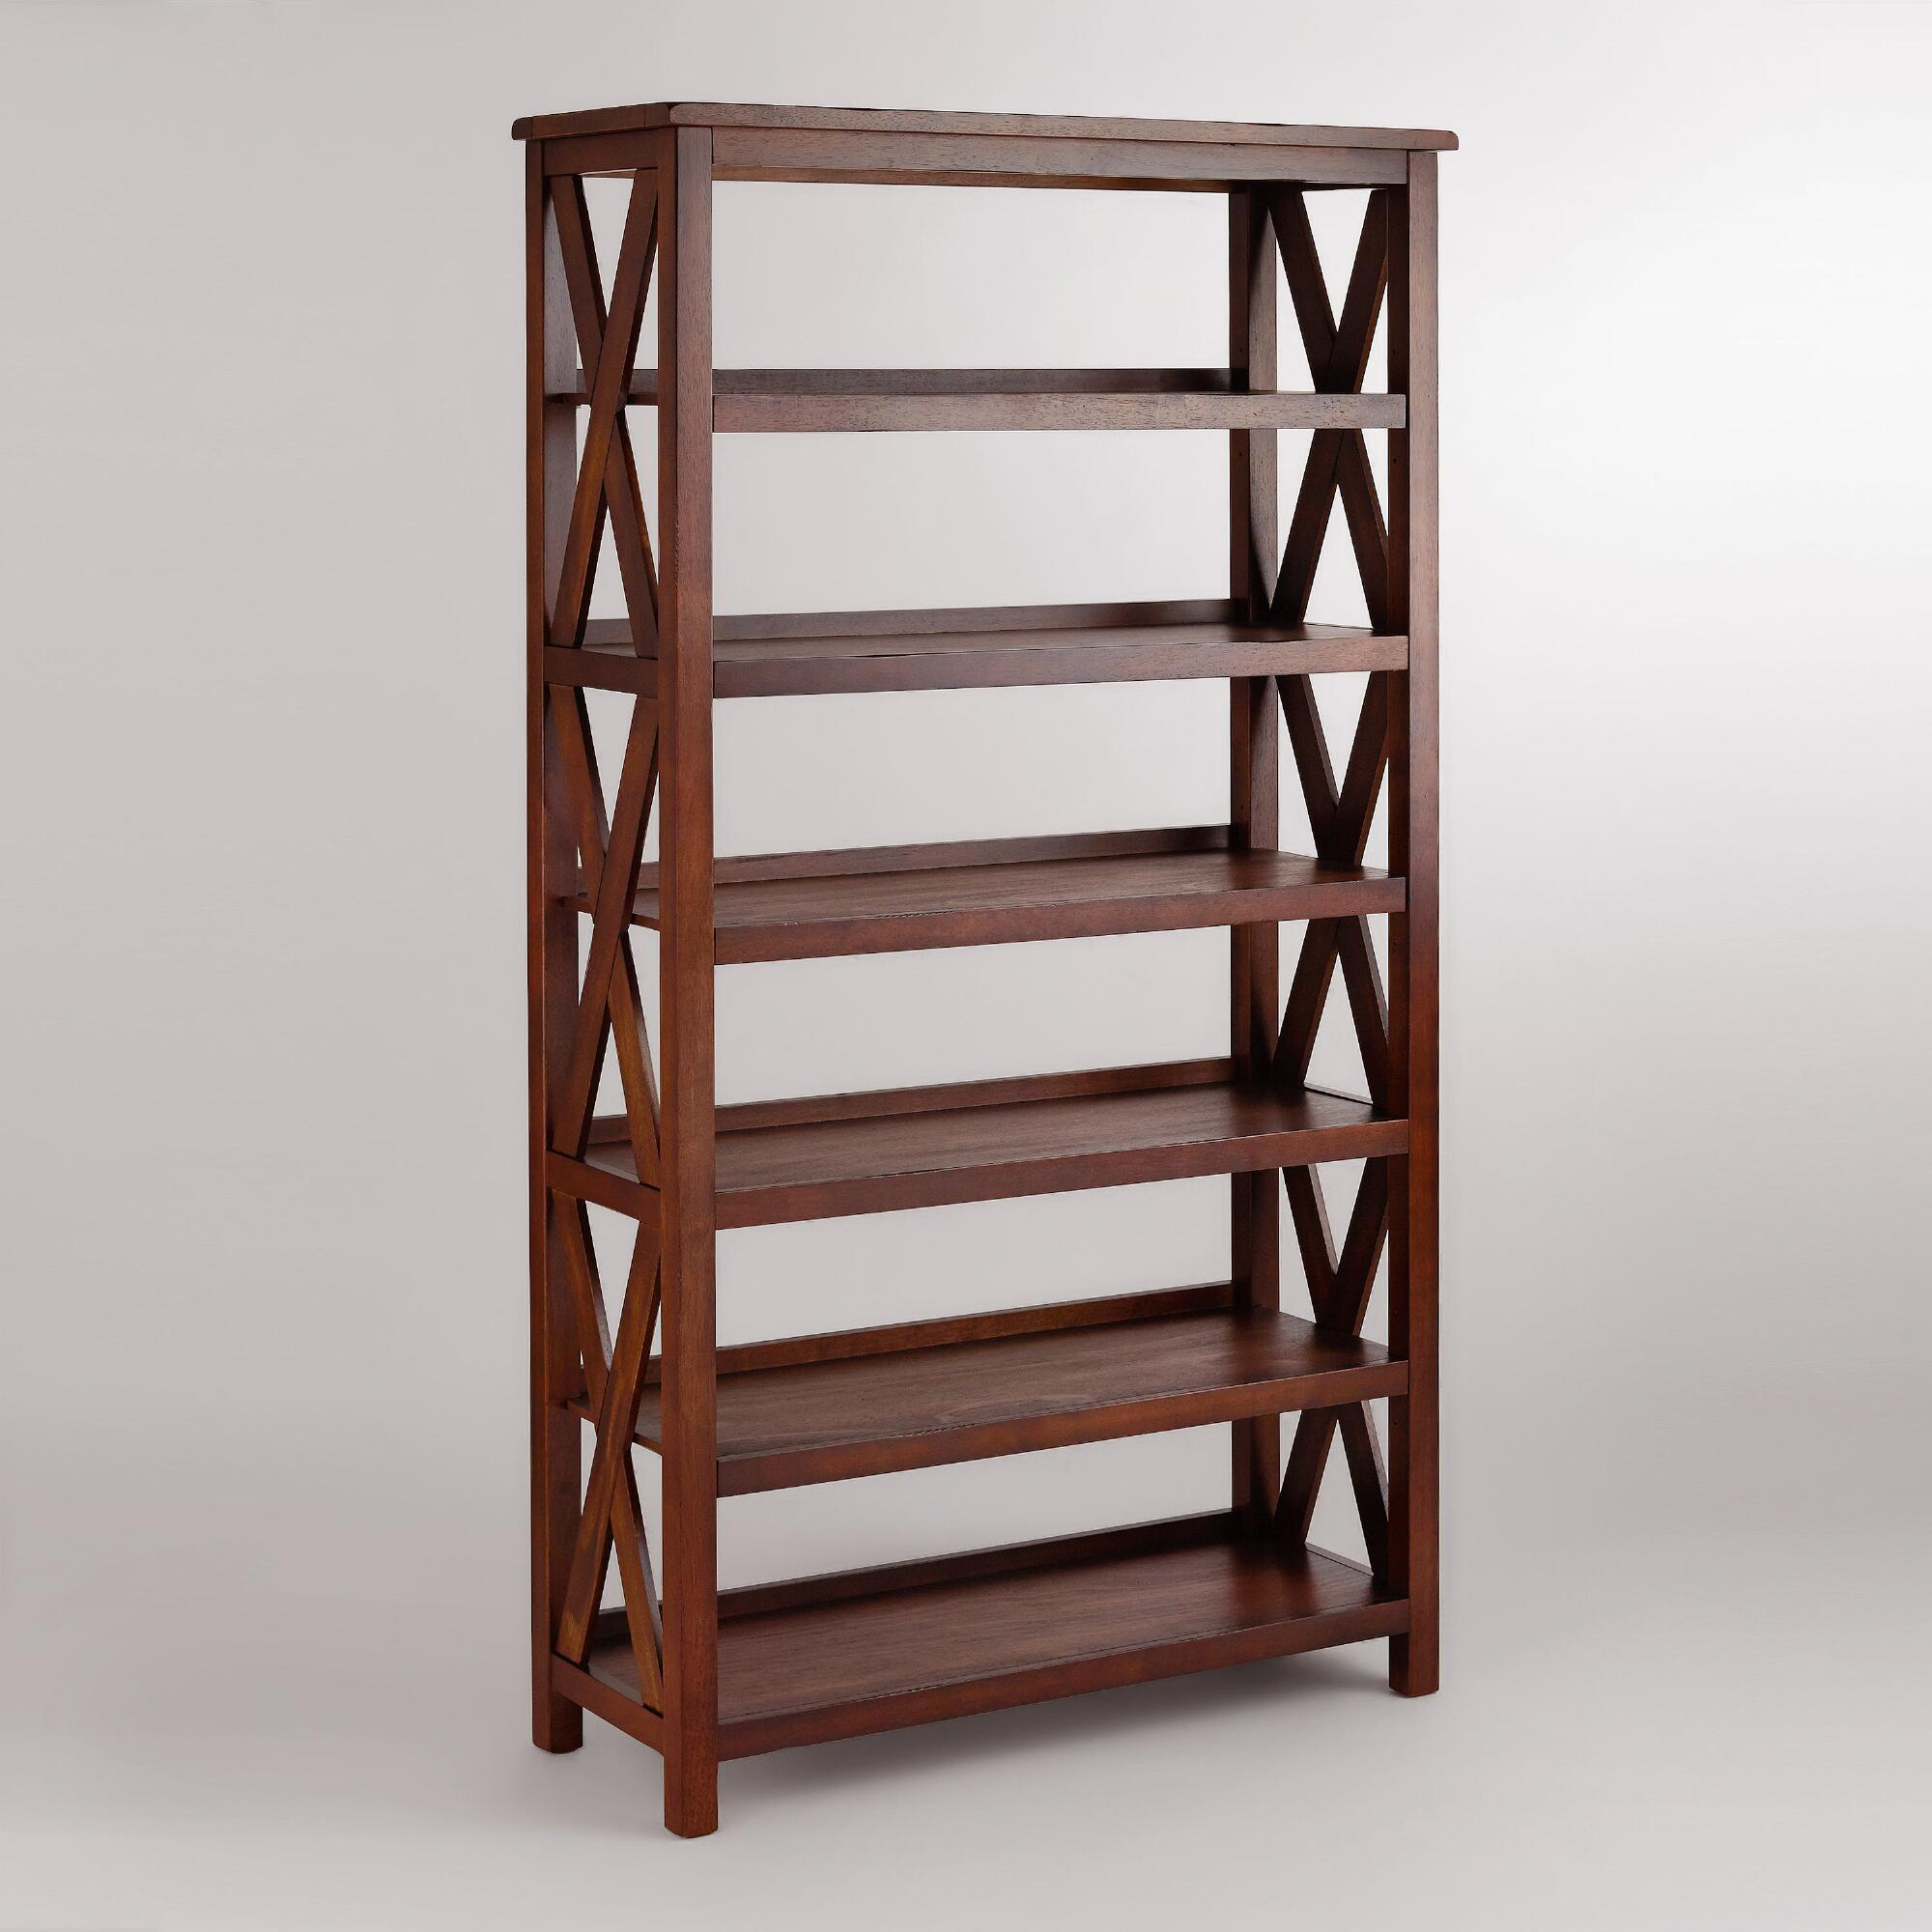 Verona Six-Shelf Bookshelf | World Market